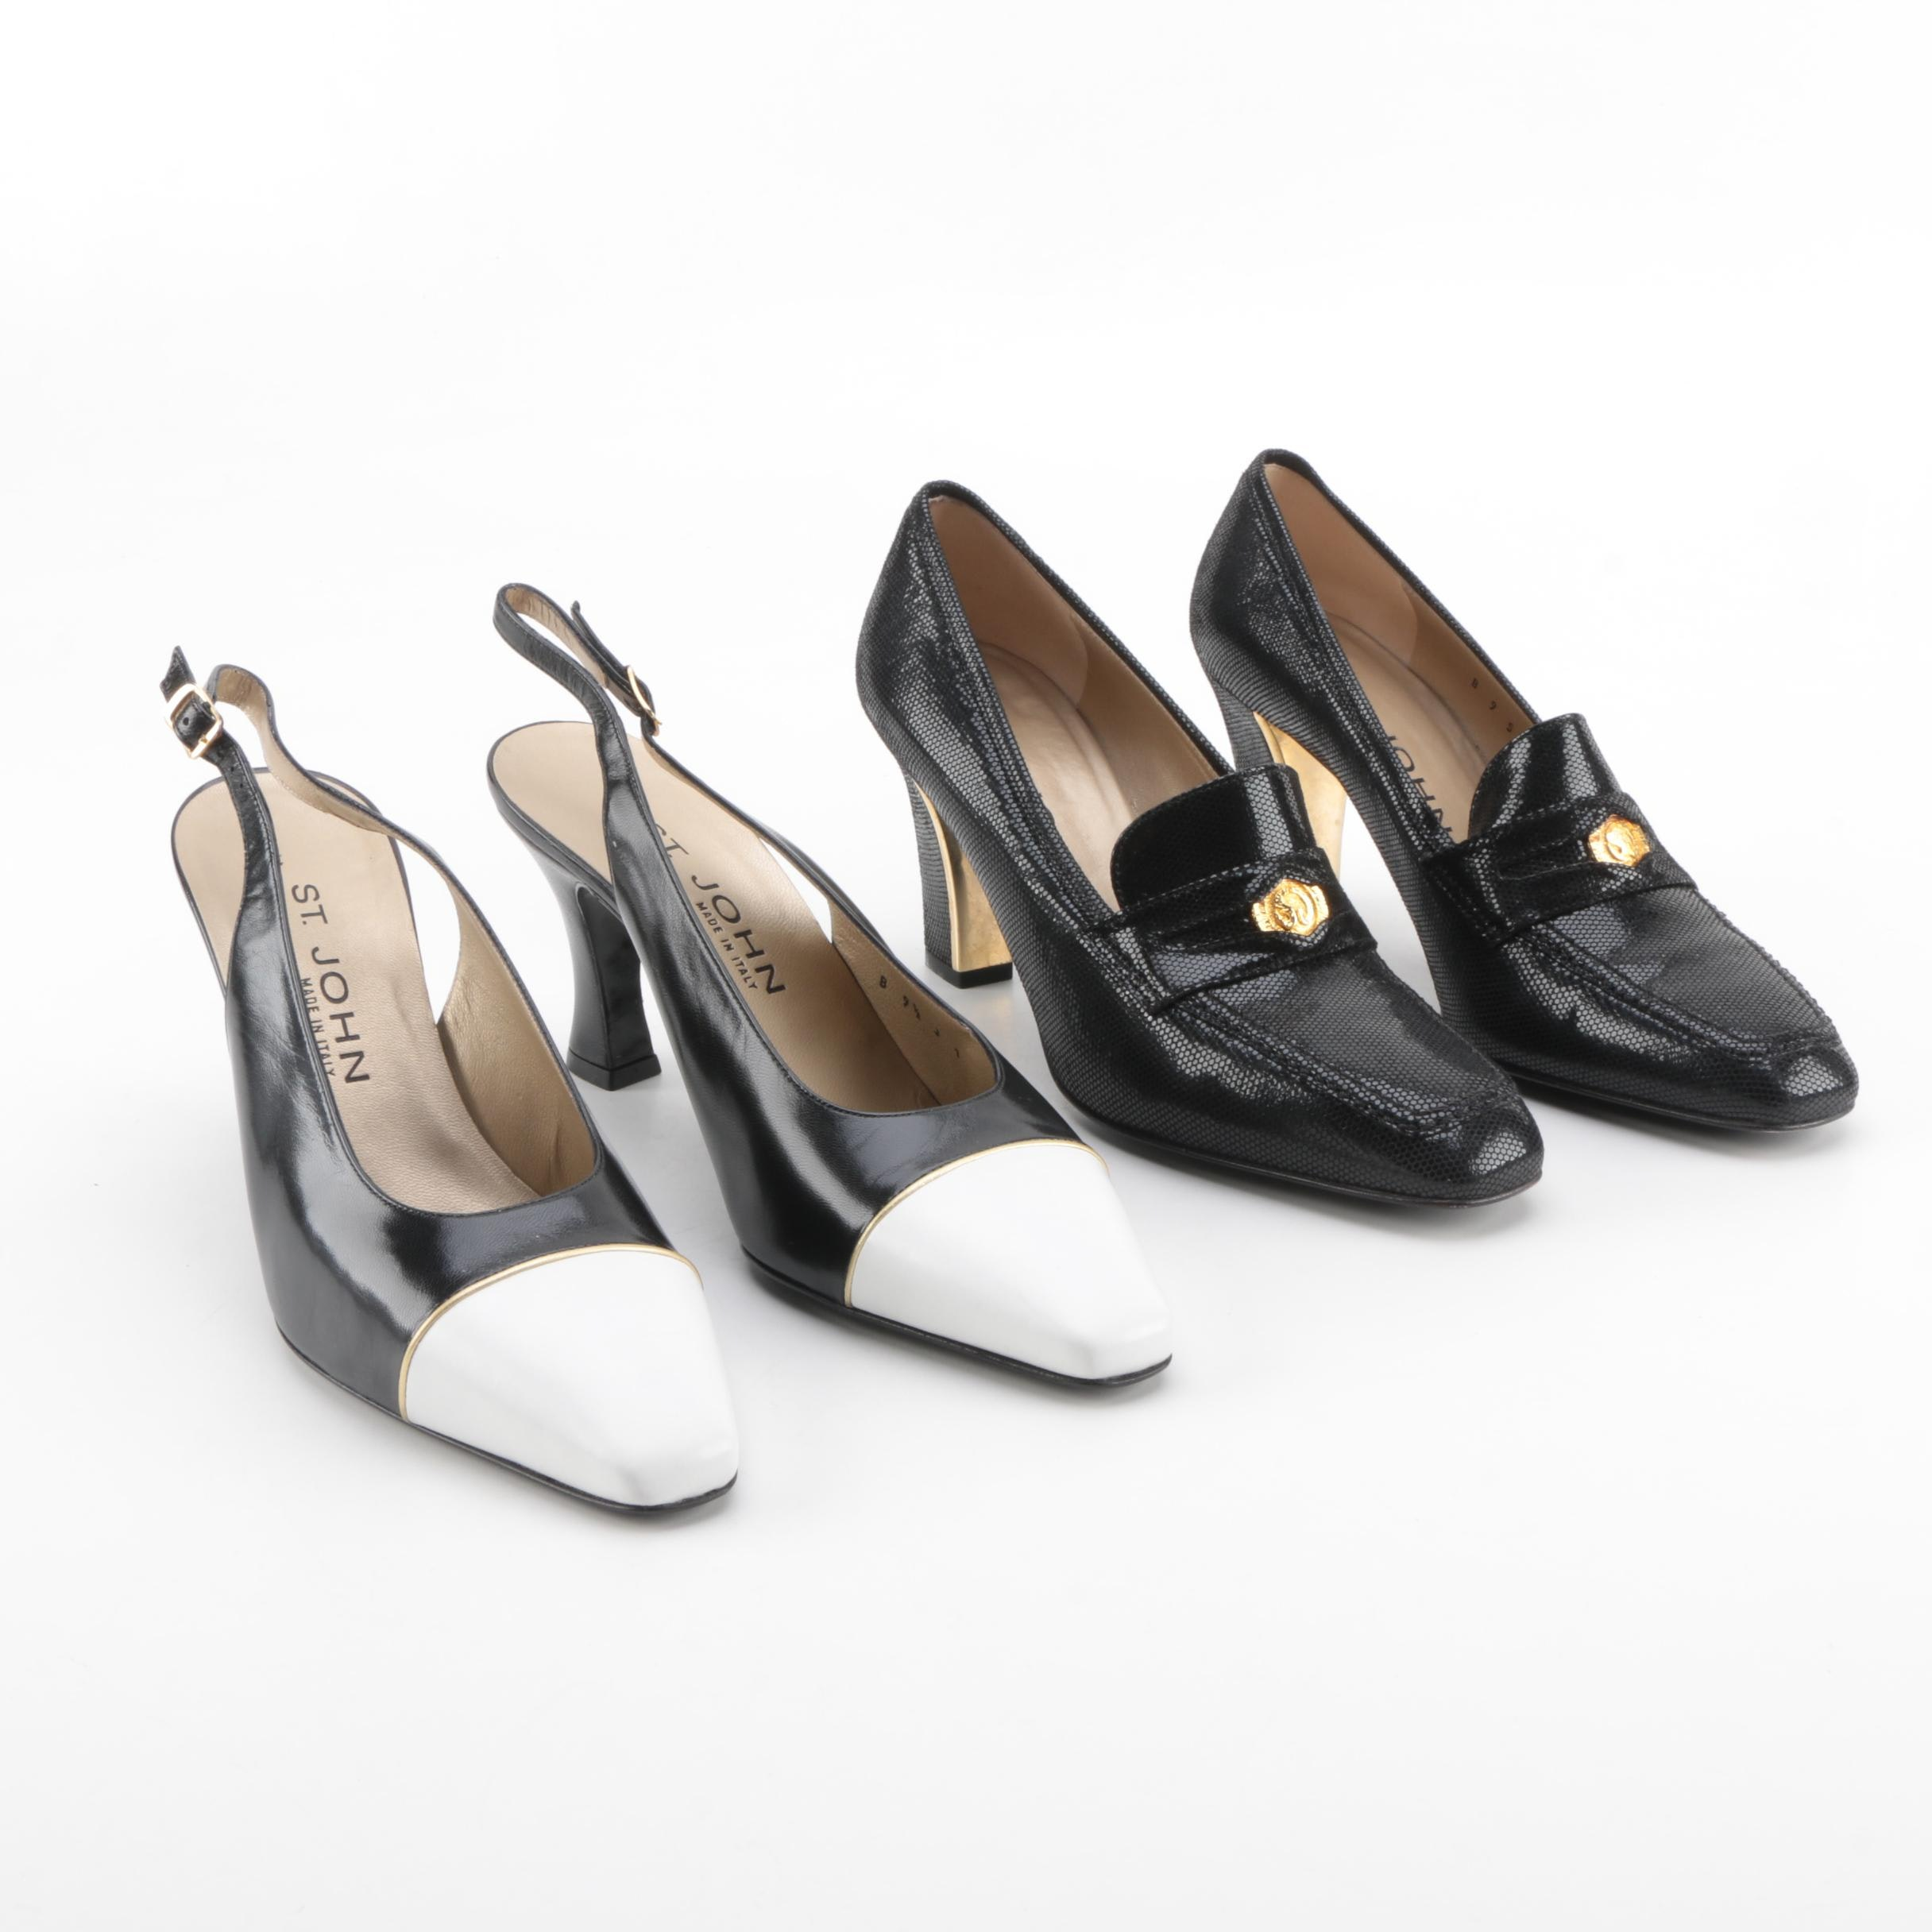 St. John Leather Slingbacks and Heeled Loafers